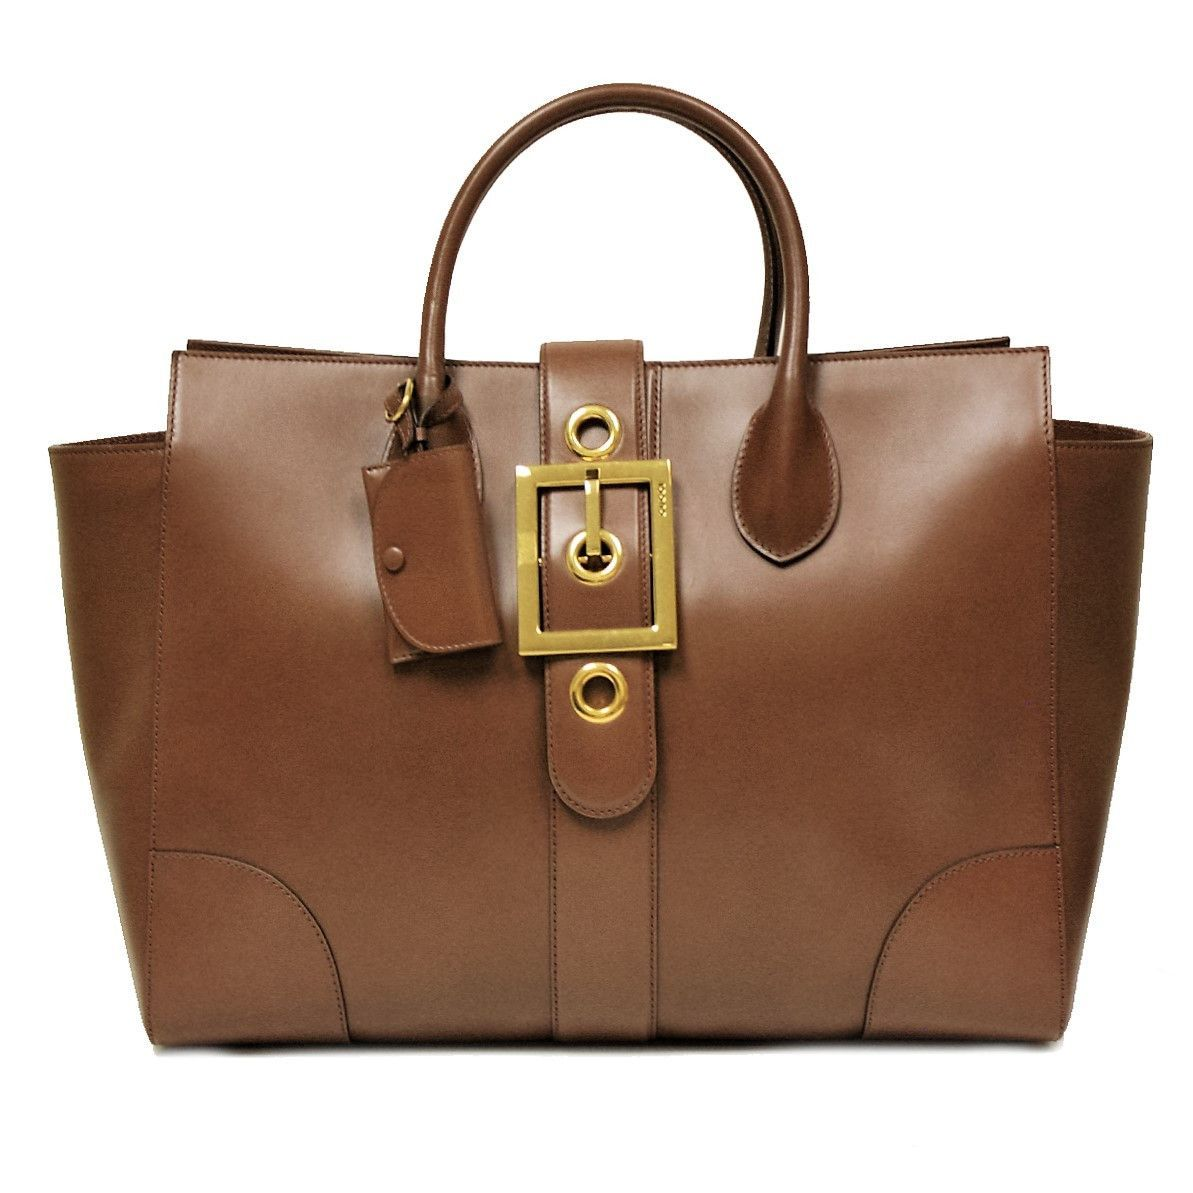 327192831dd Gucci Lady Buckle Large Leather Business Tote Bag